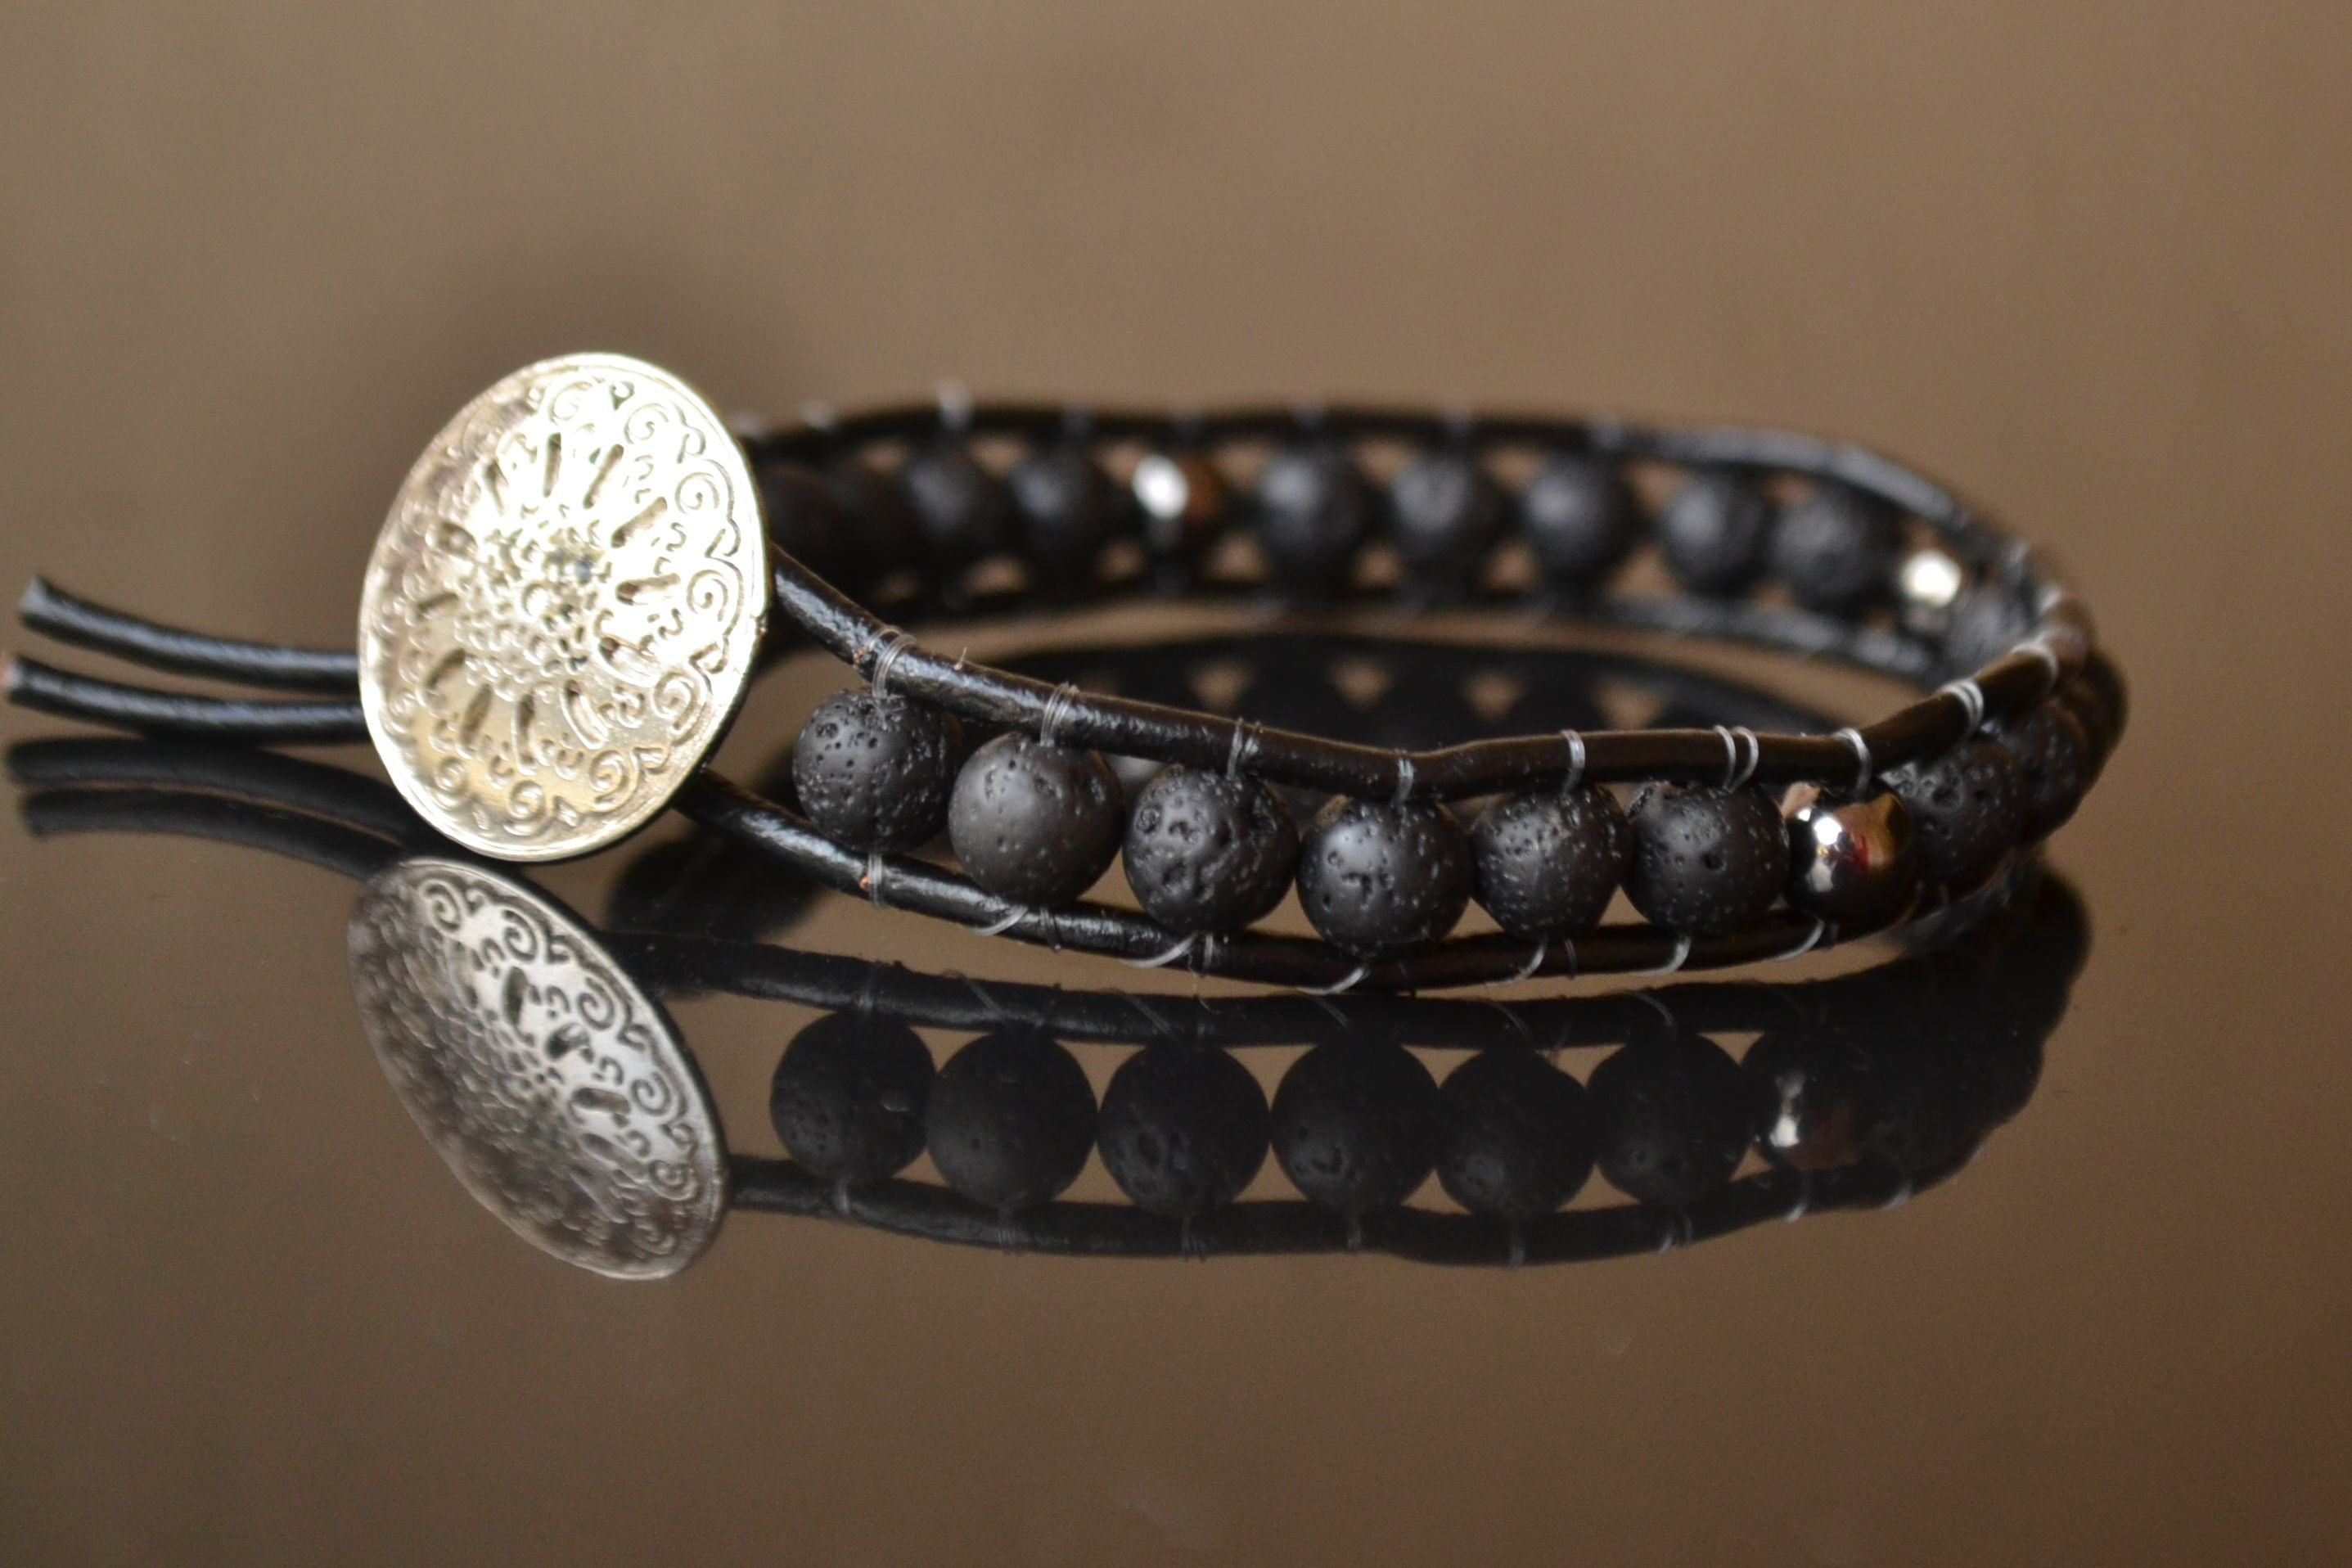 Bracelet black volcanic lava mm chan loo natural stones leather